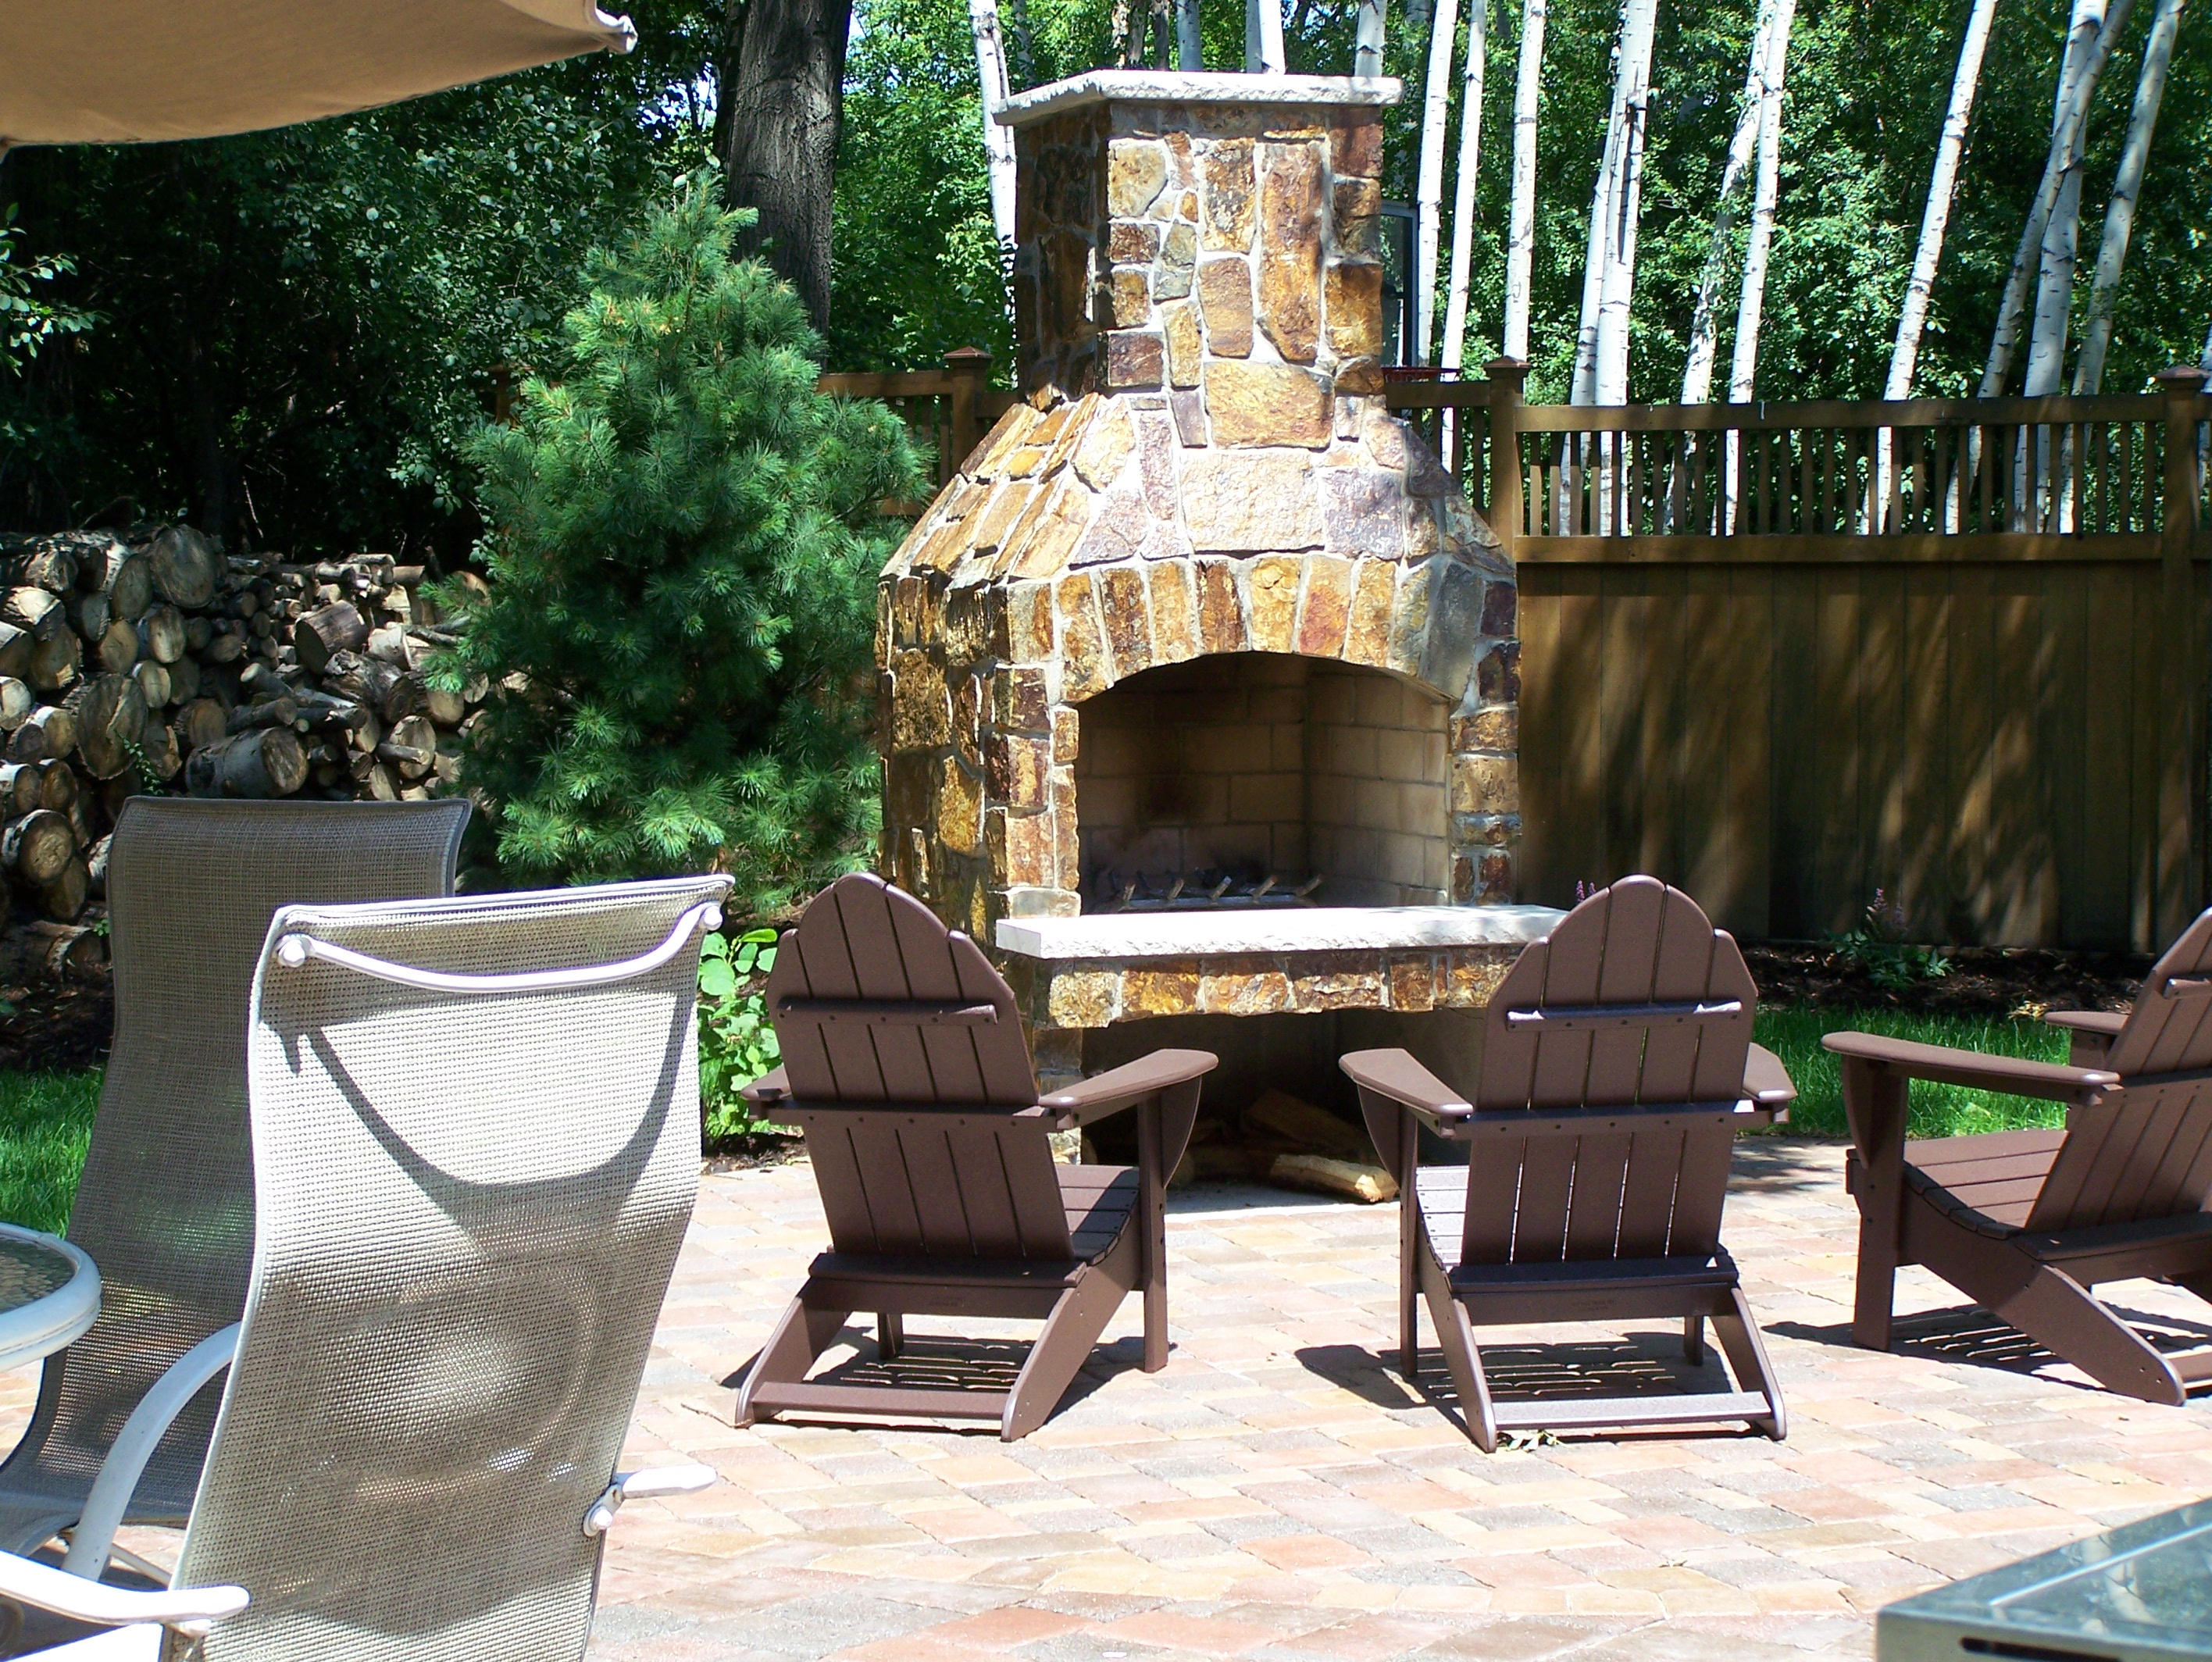 Custom Outdoor Fireplaces And Fire Pits Great Goats LandscapingGreat Goats